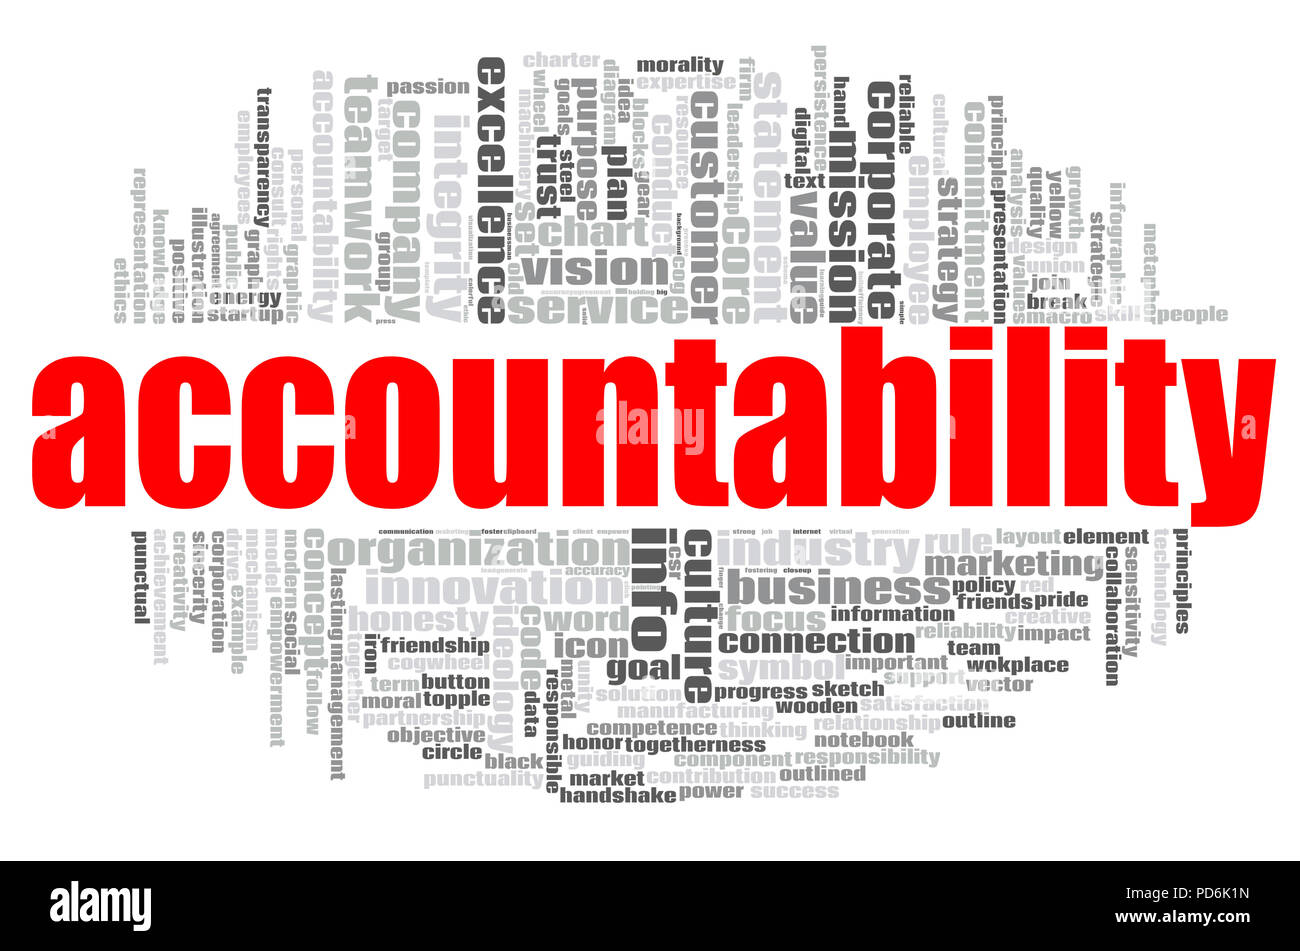 Accountability word cloud concept on white background, 3d rendering. - Stock Image